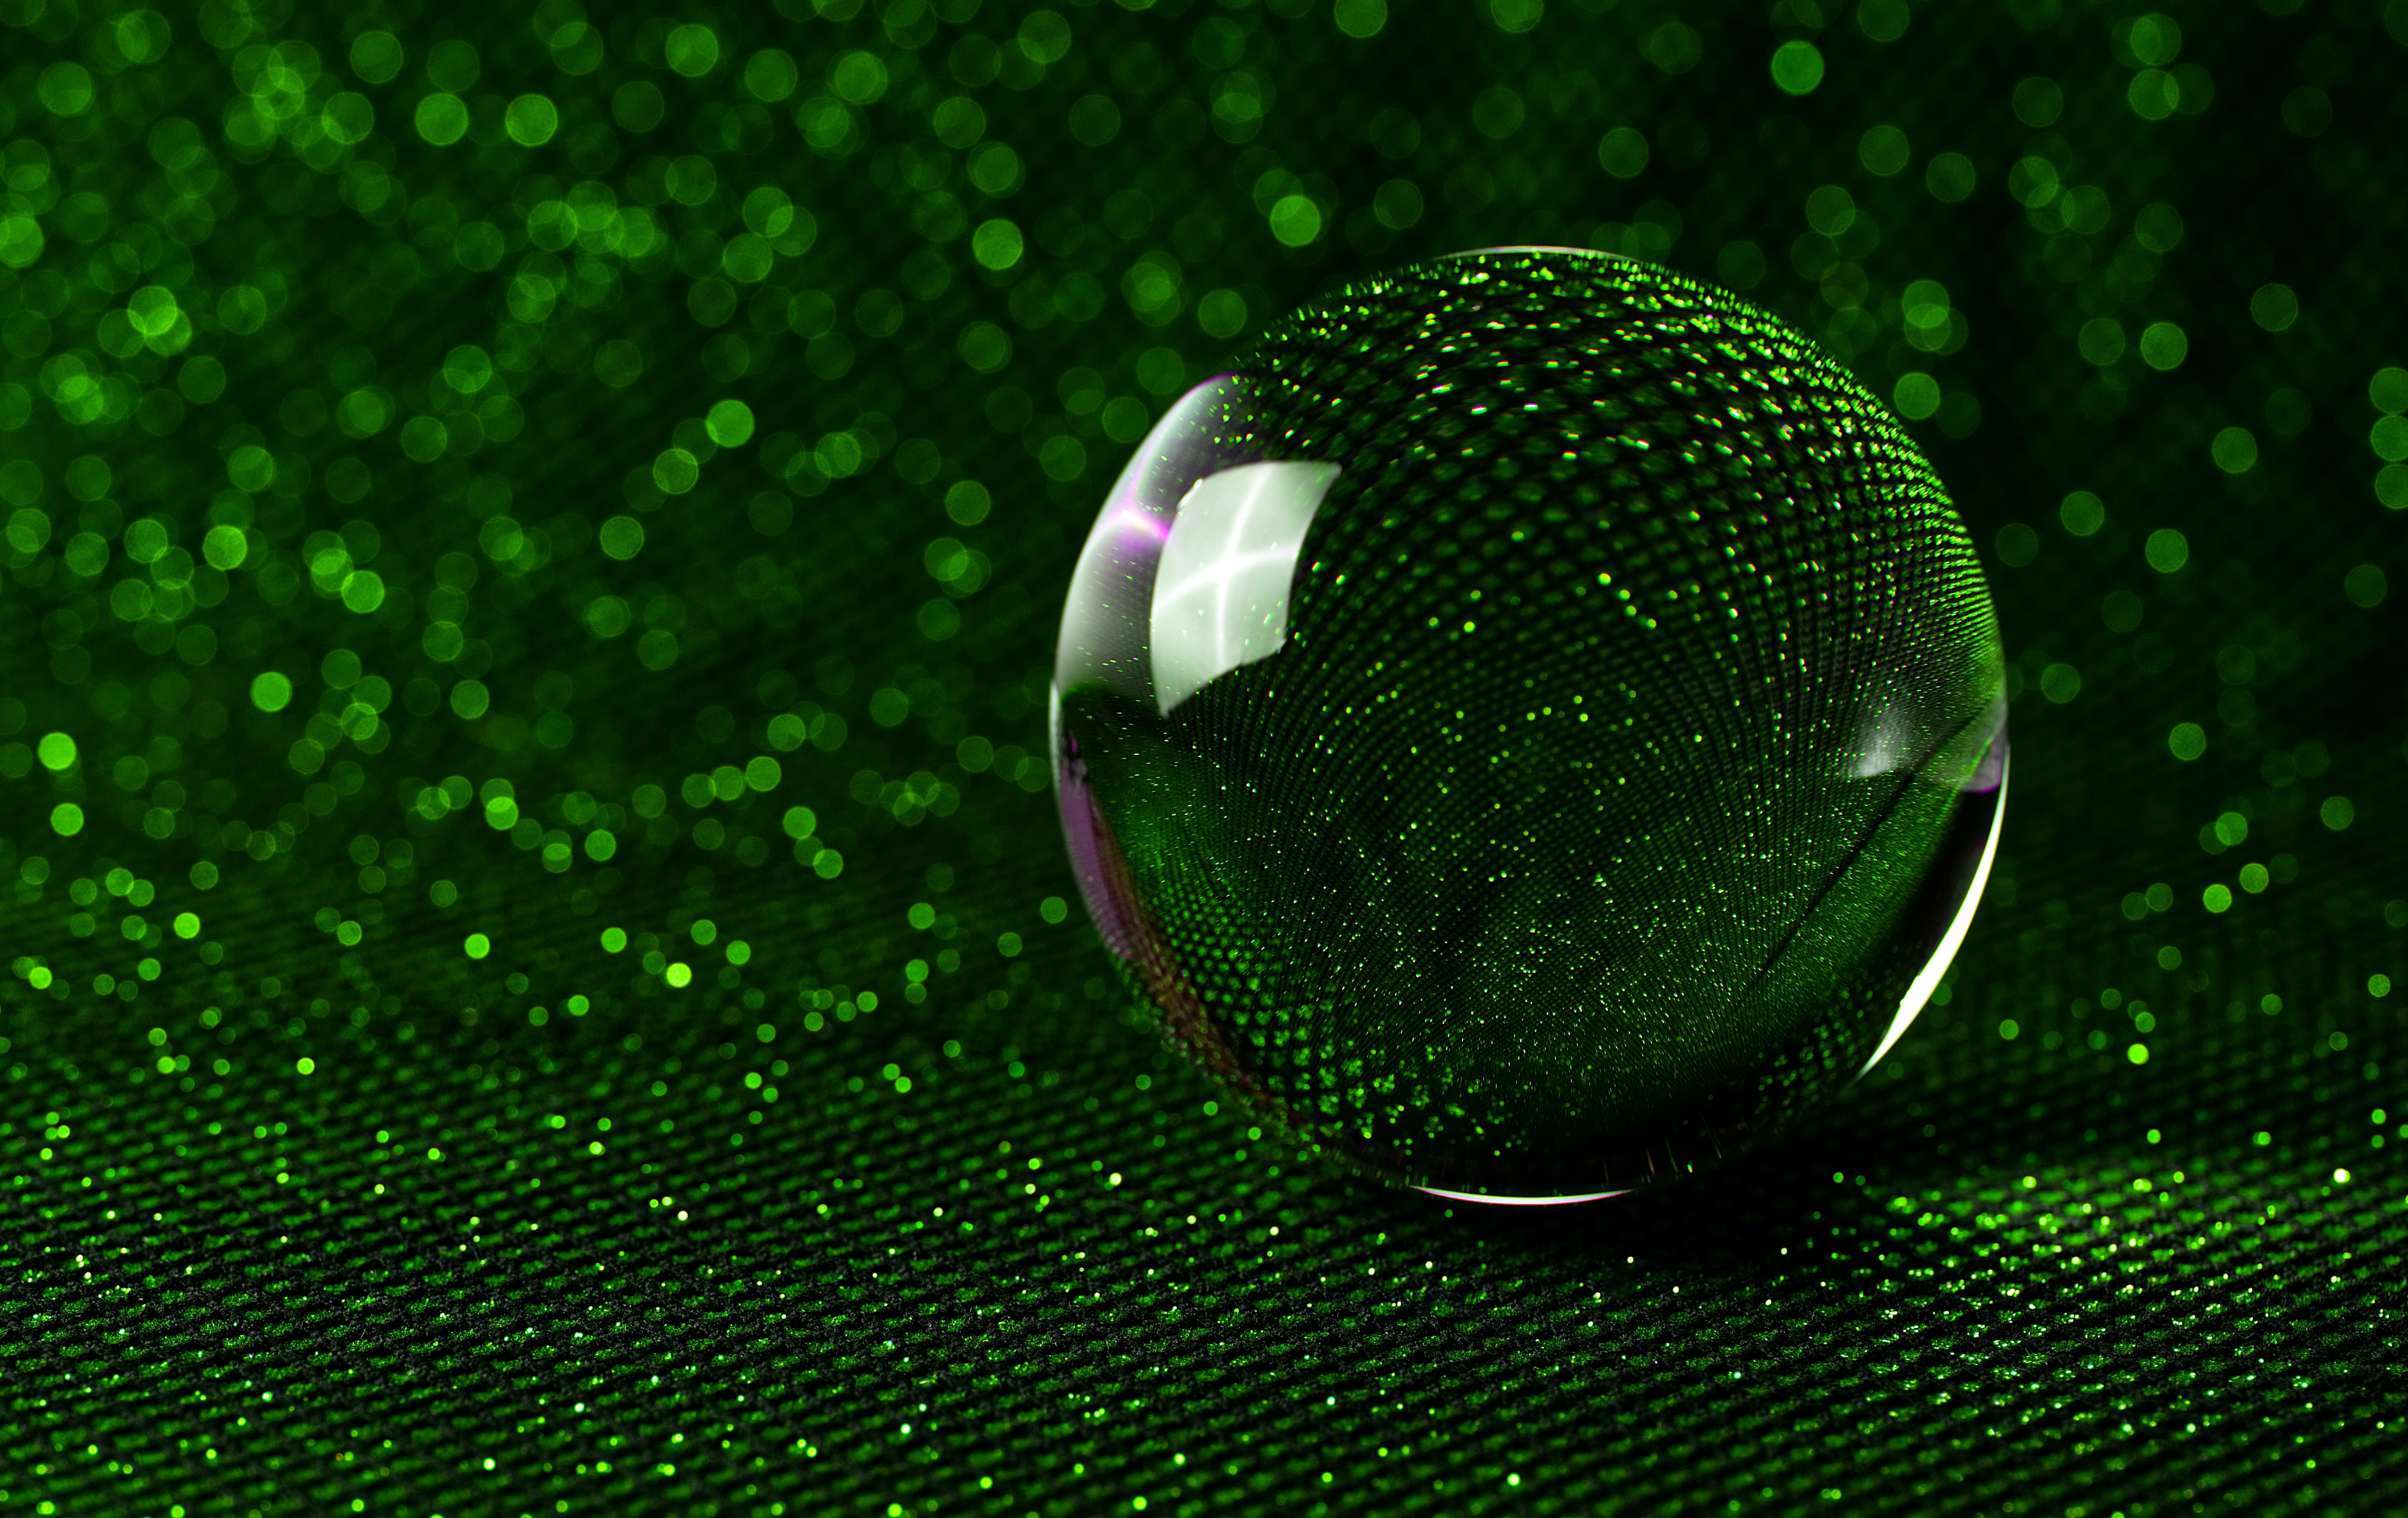 132069 download wallpaper Miscellanea, Reflection, Miscellaneous, Ball, Tinsel, Sequins, Bokeh, Boquet, Mirror, Mirrored screensavers and pictures for free